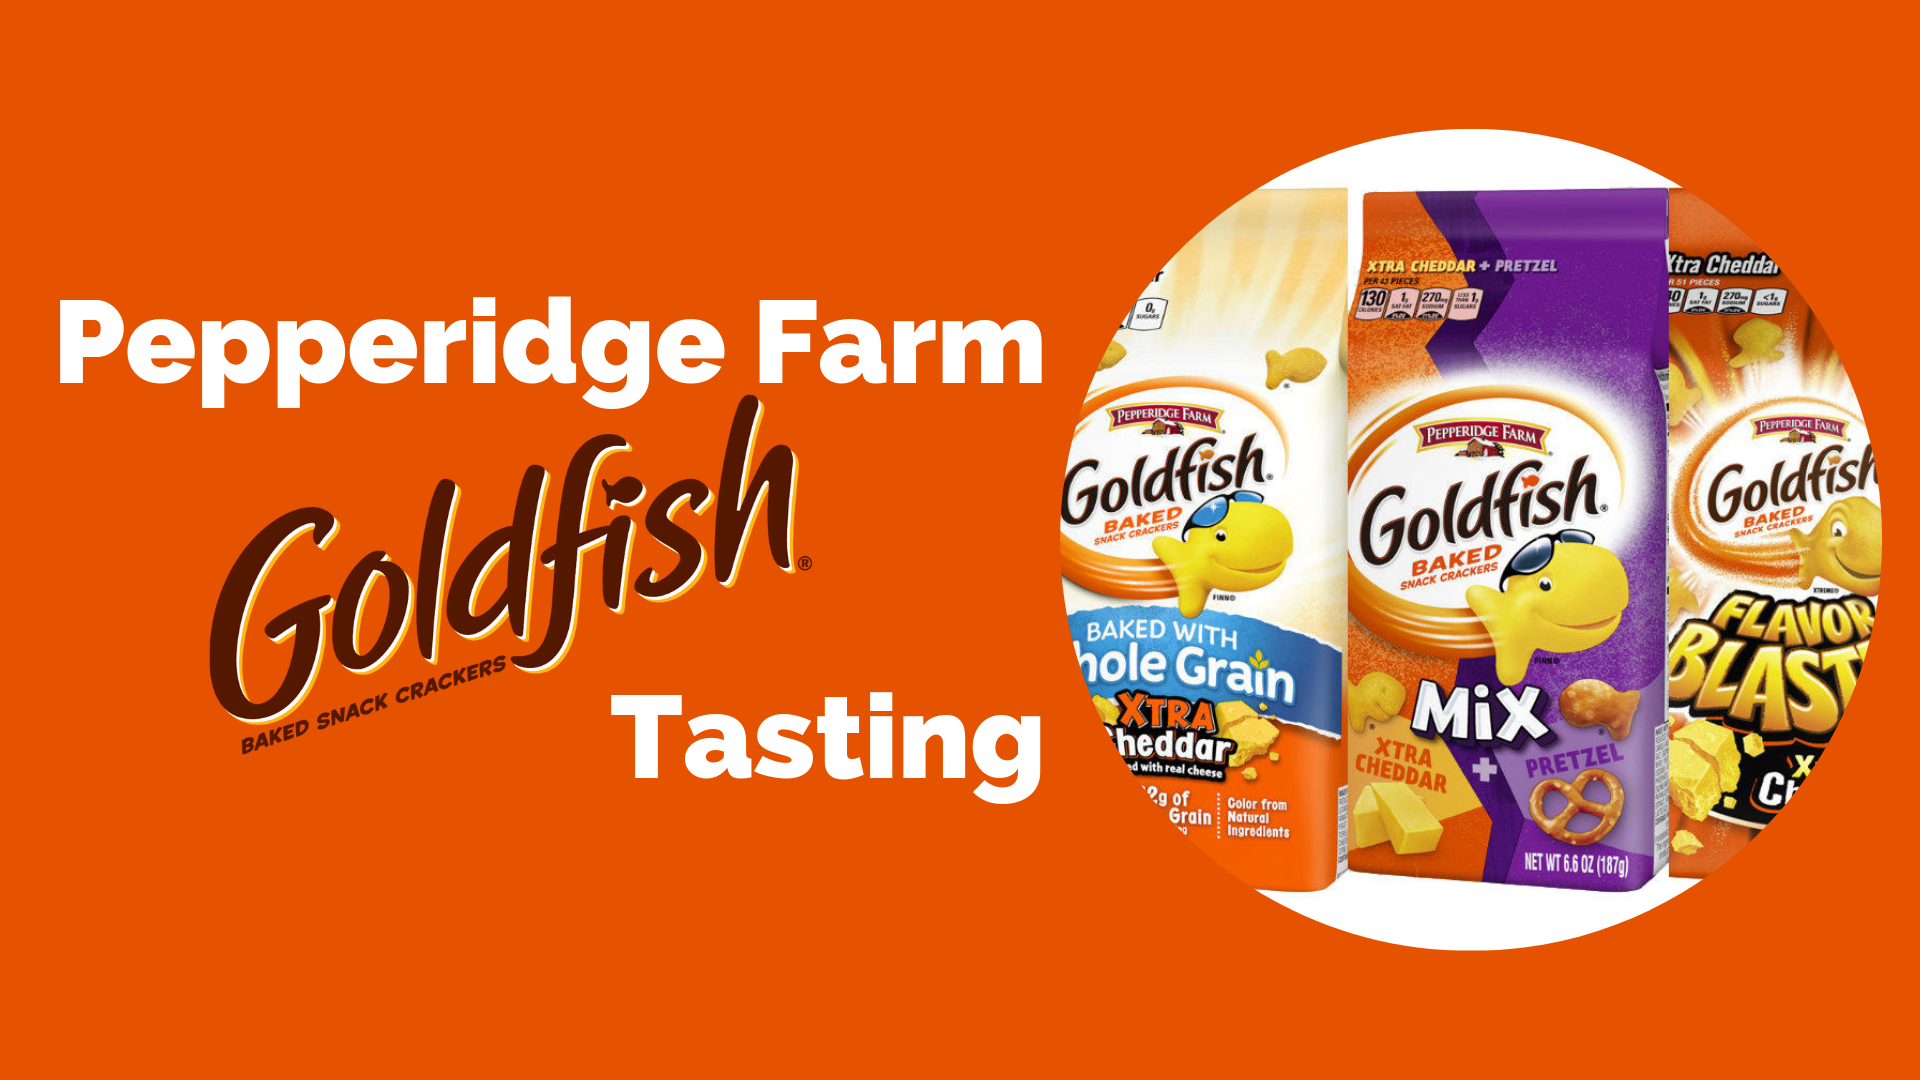 Pepperidge Farm GoldfishⓇ Tasting